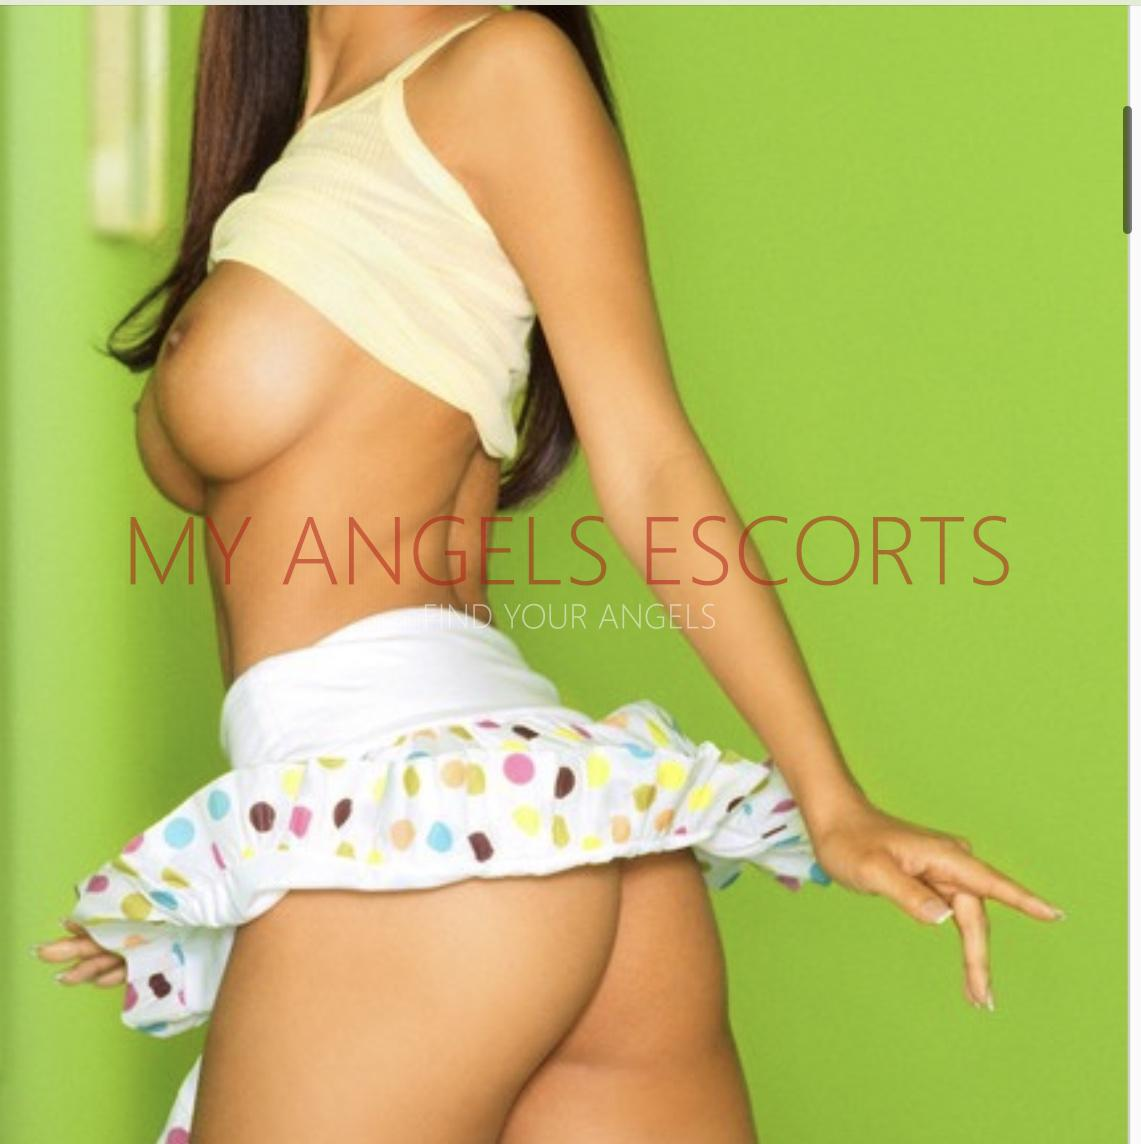 New Zealand Escorts-Anal Queen-private-escorts-Agency-Auckland-escorts-panmure-Escorts-1